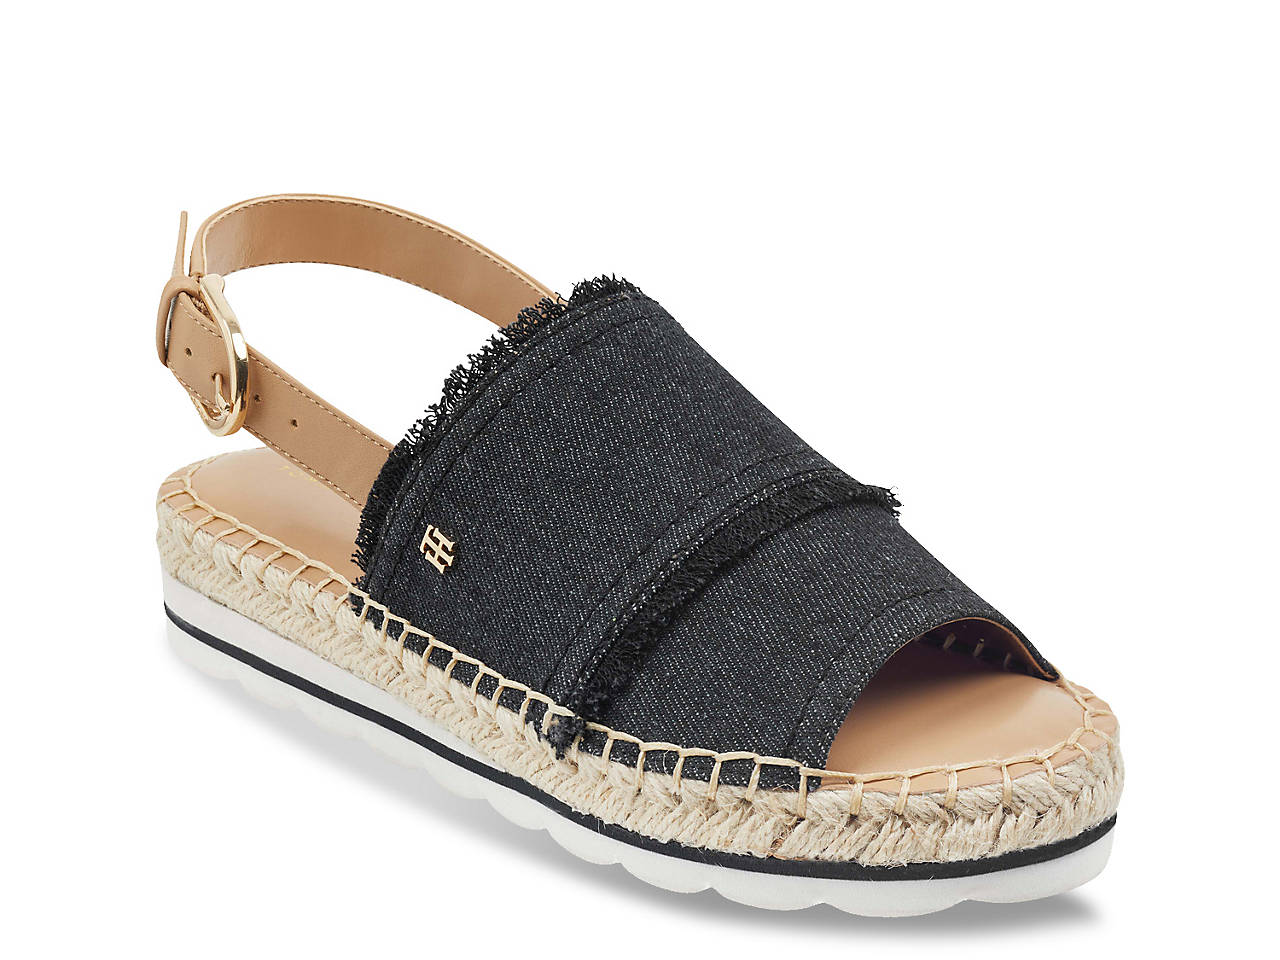 de4a5a04416b Tommy Hilfiger Grove Espadrille Sandal Men s Shoes